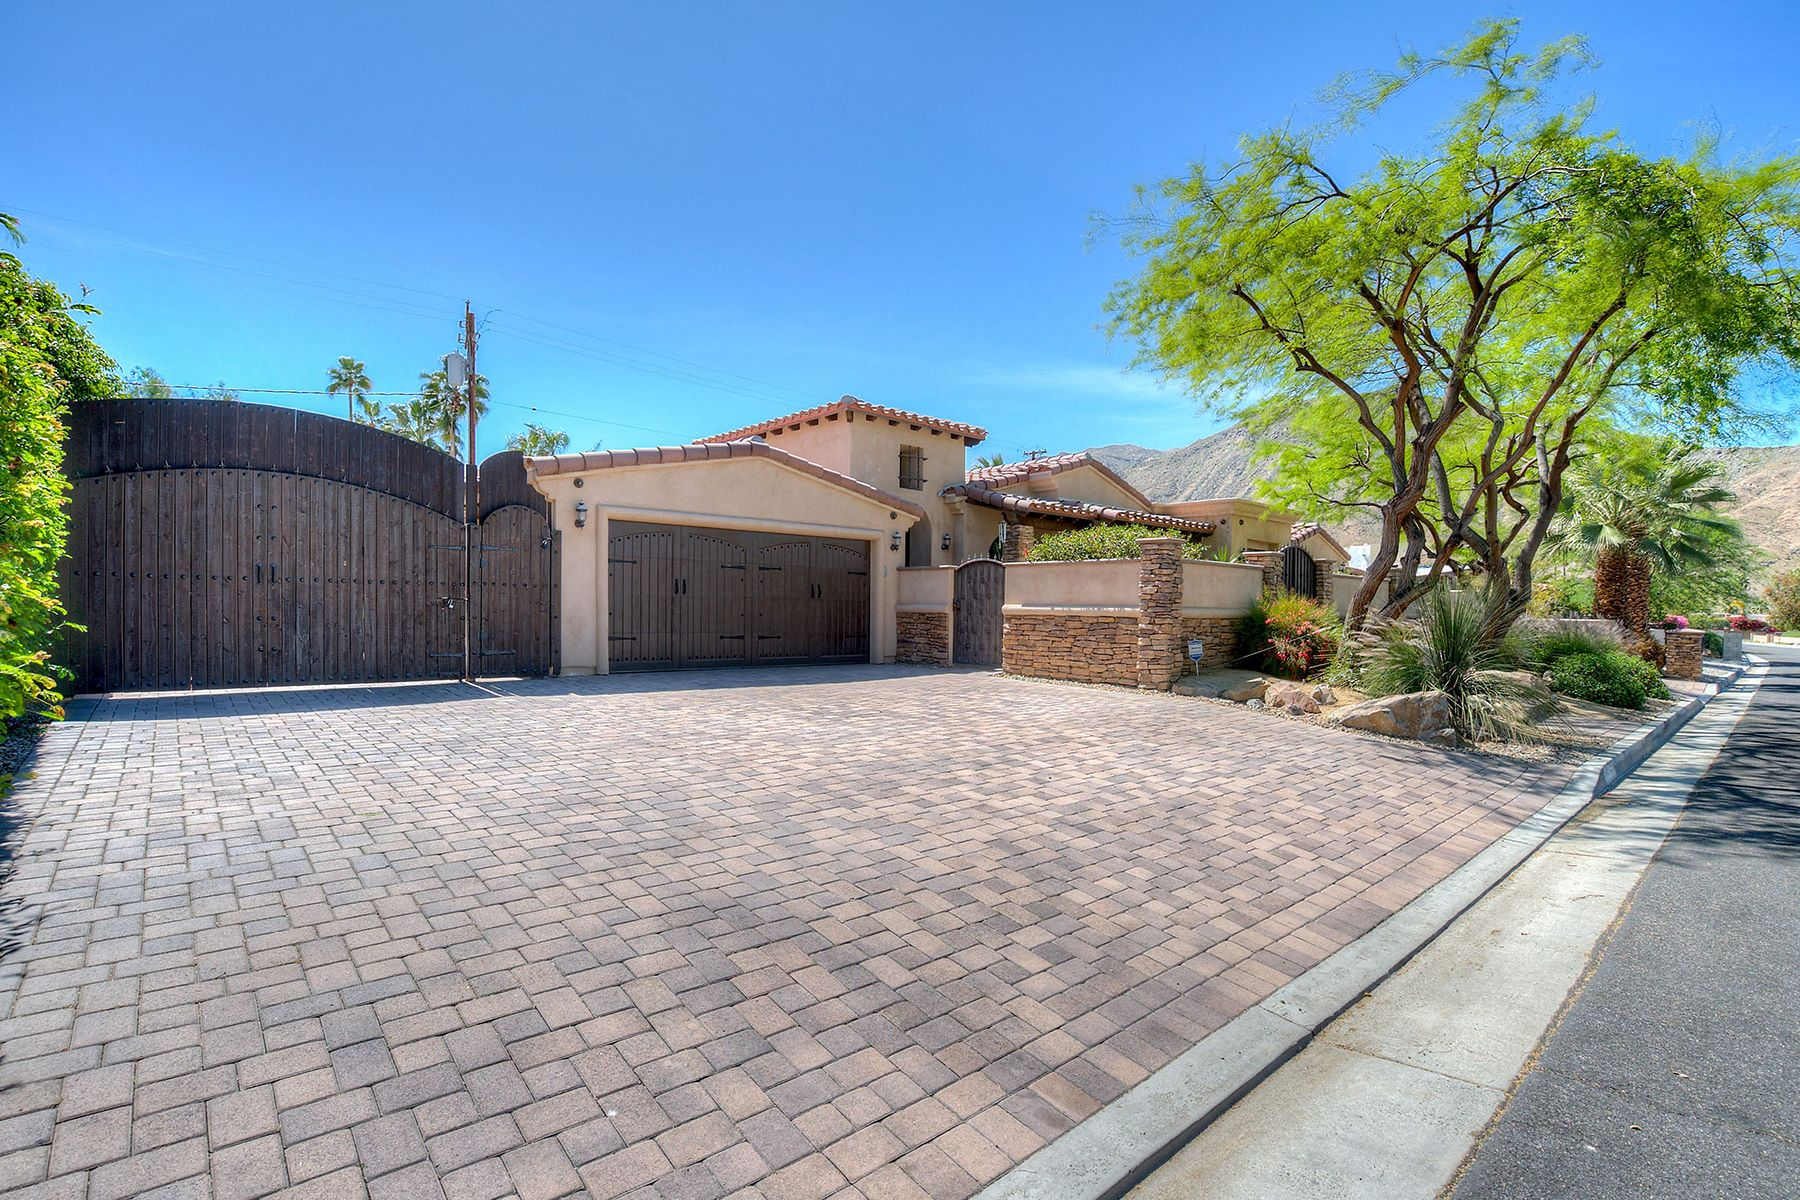 Casa Unifamiliar por un Venta en 72775 Beavertail Street Palm Desert, California 92260 Estados Unidos